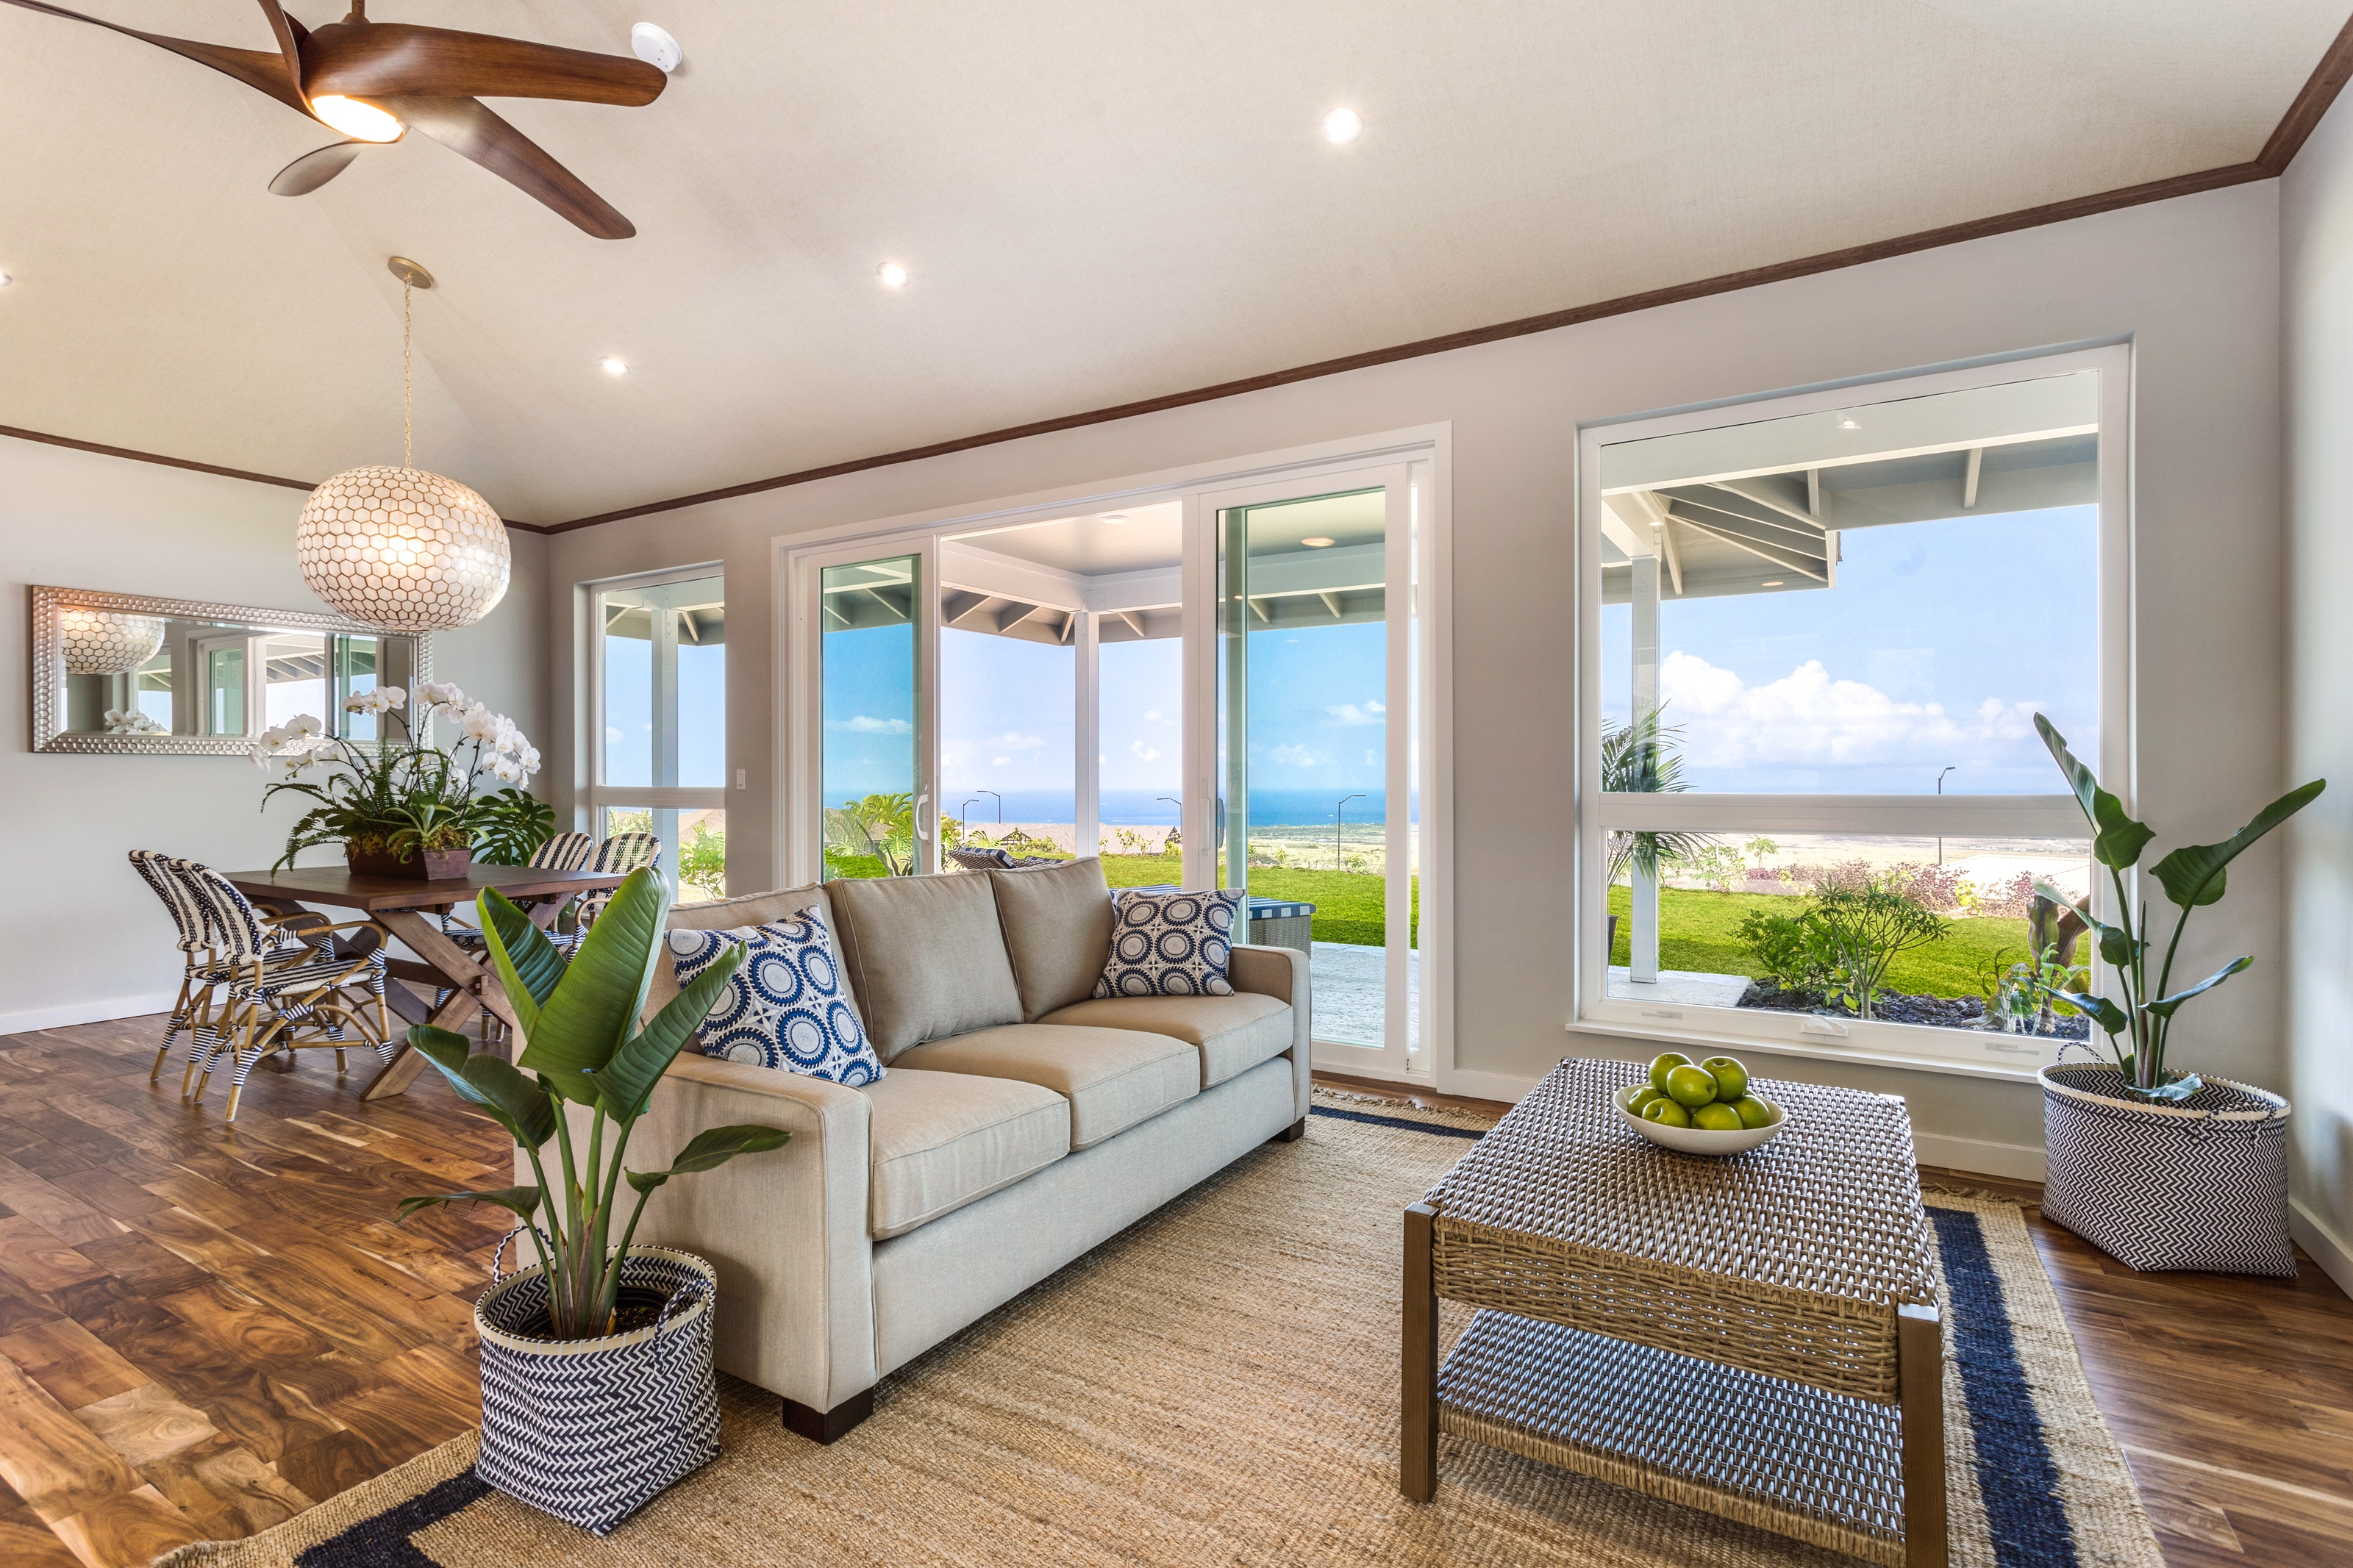 living room with view to lanai and ocean